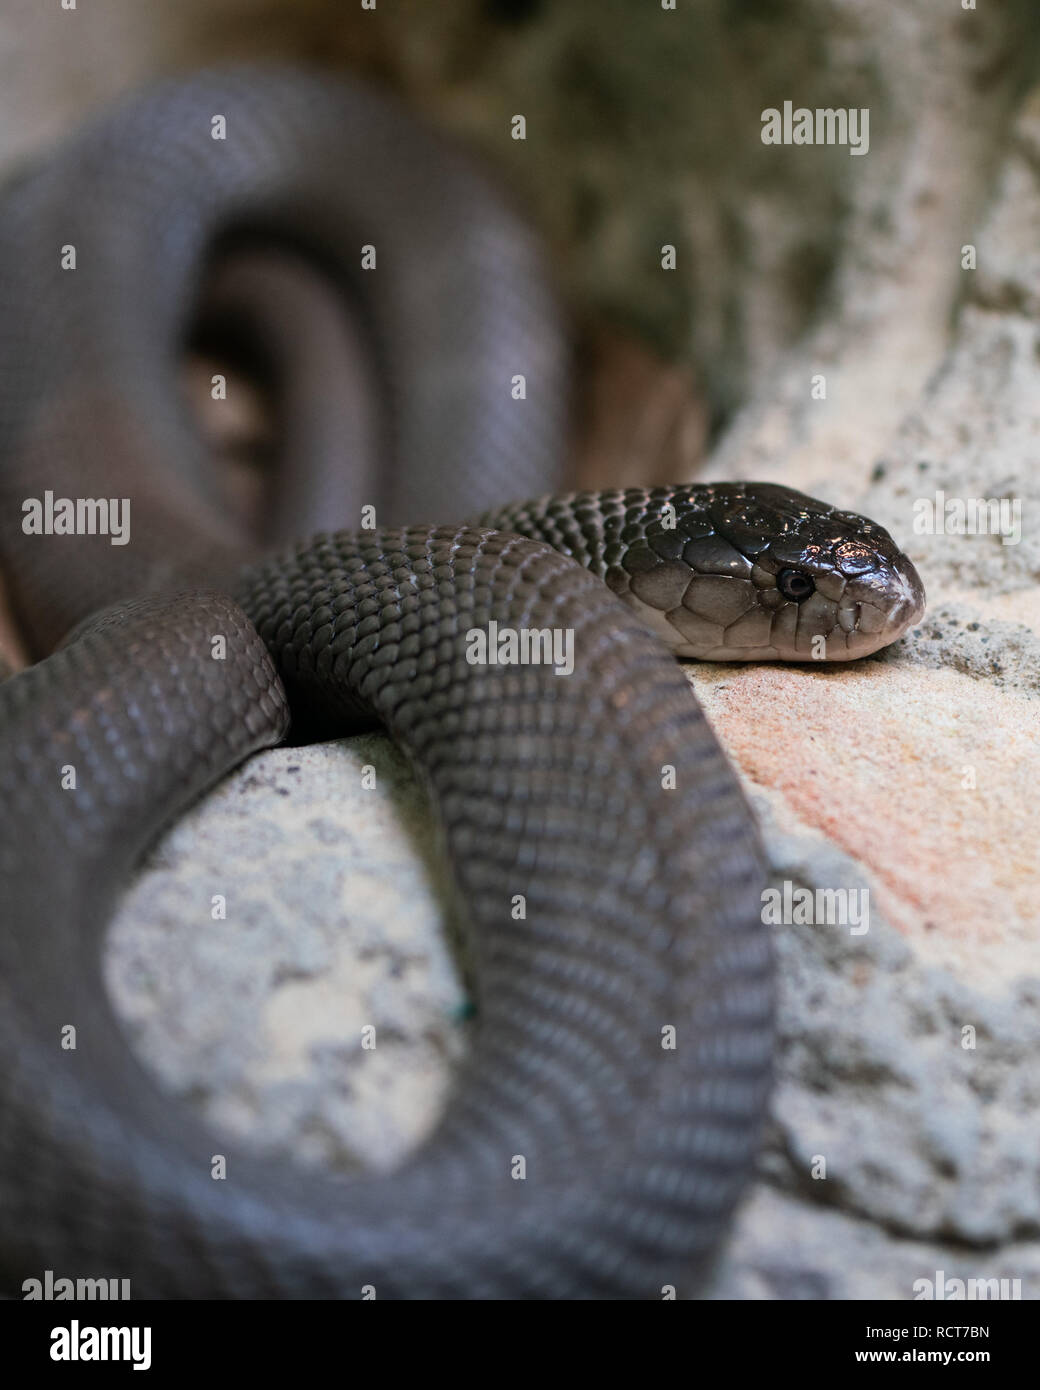 Close-up view of an Inland Taipan or Oxyuranus microlepidotus in Australia the most venomous snake in the world - Stock Image